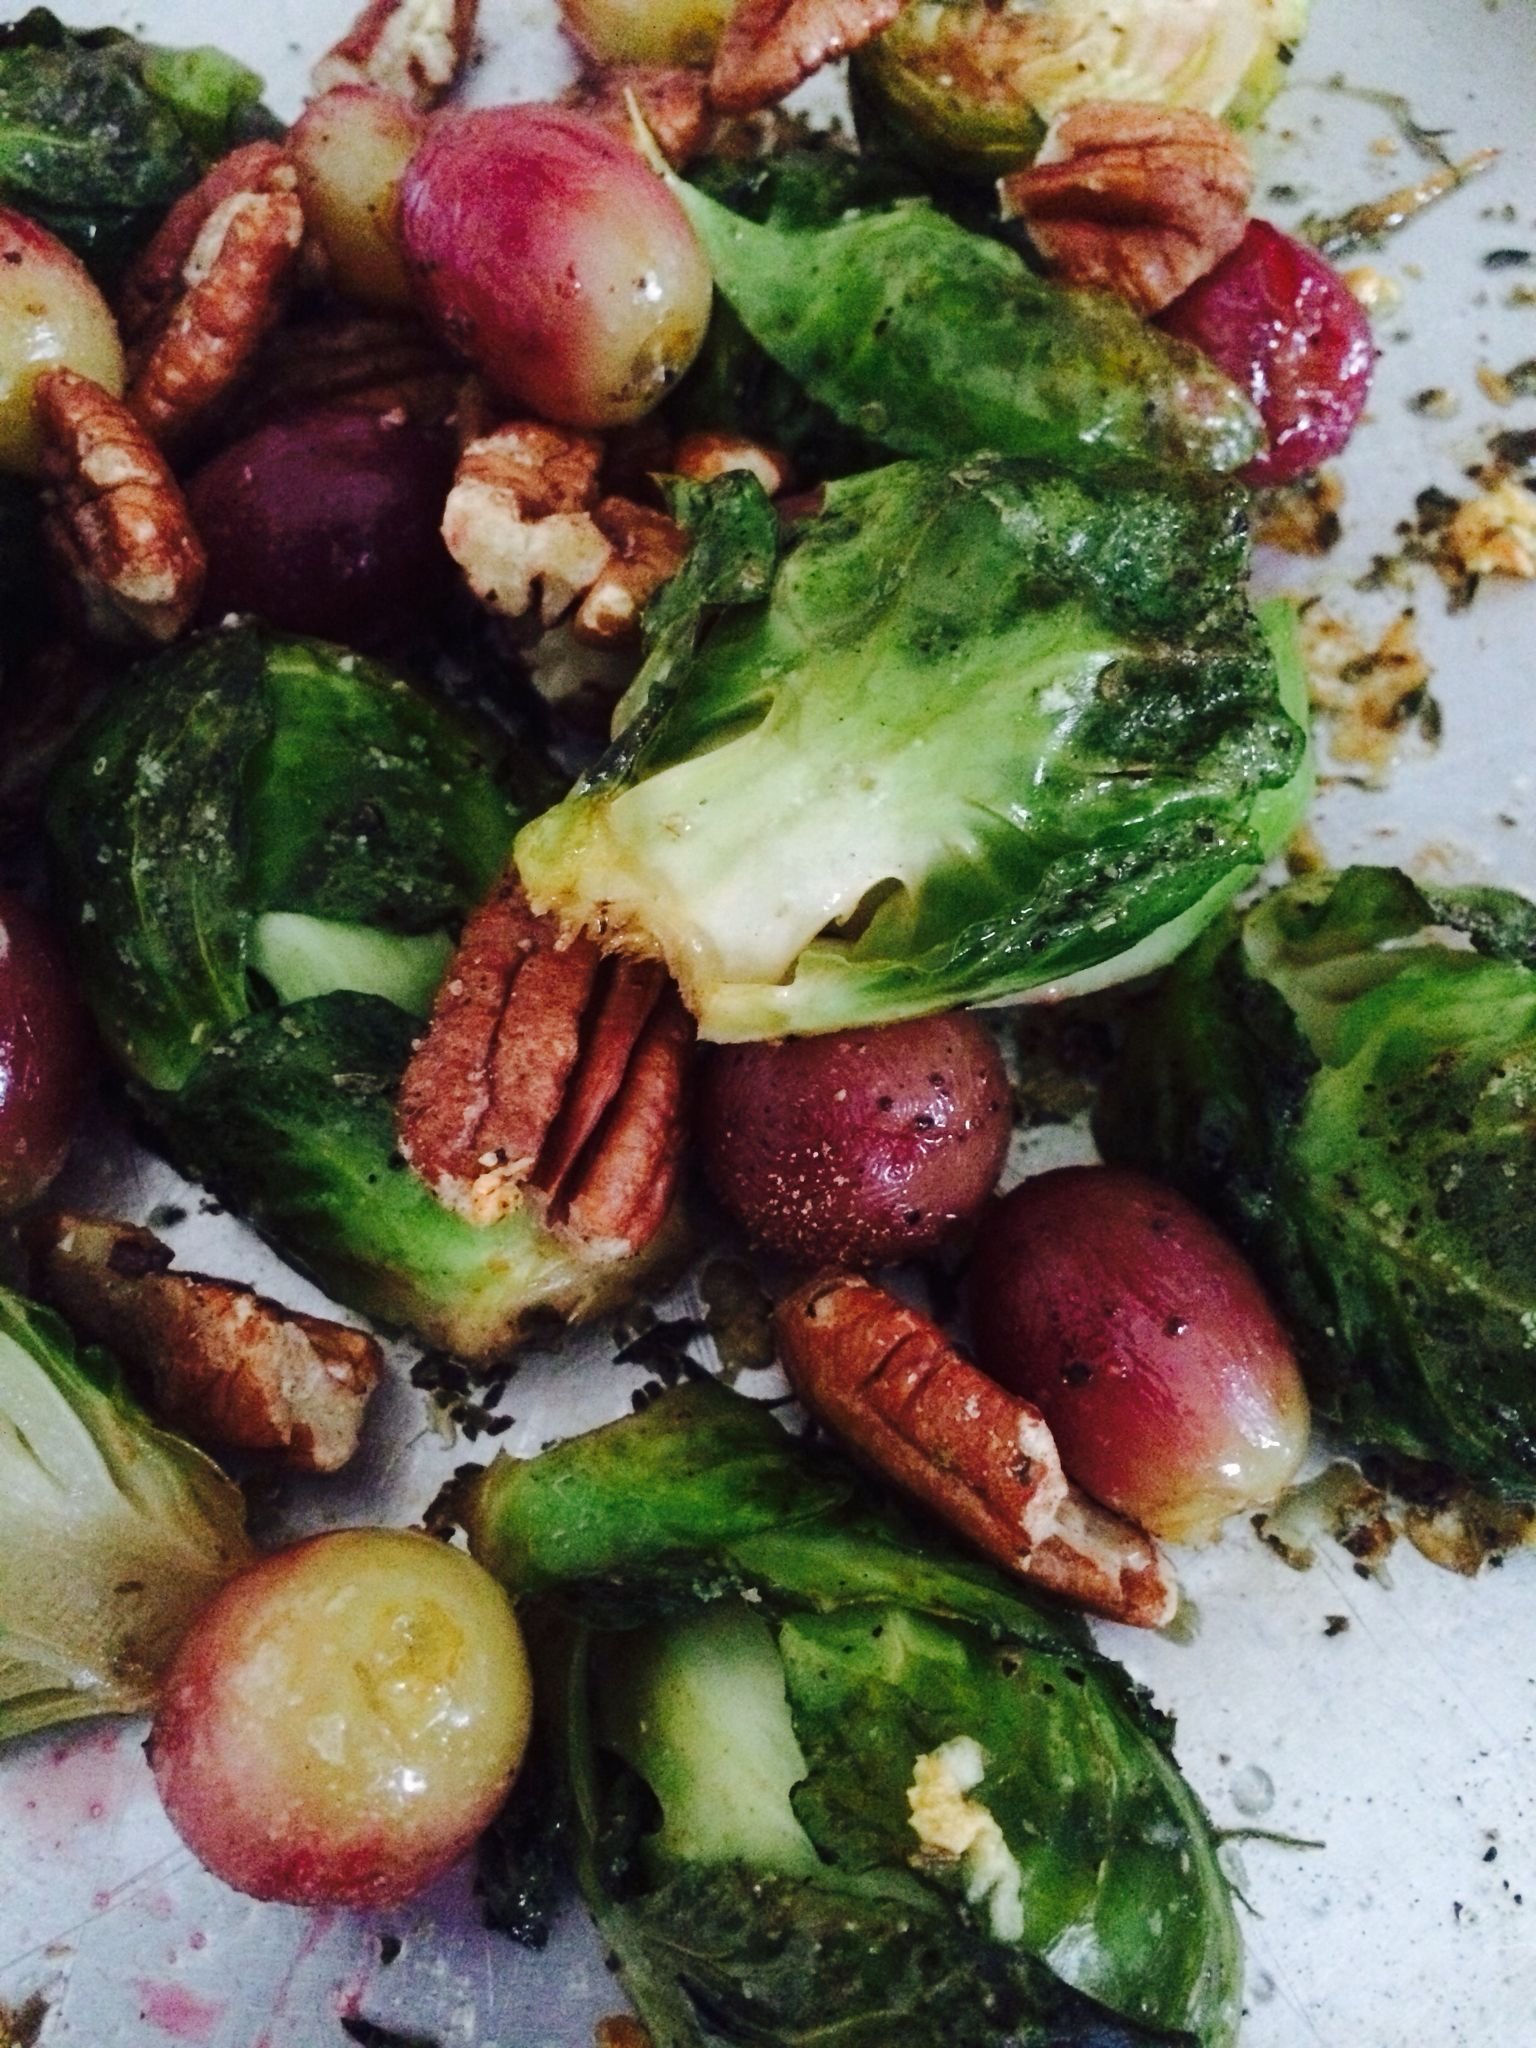 Baked Brussels Sprouts in garlic and olive oil with pecan nuts and red seedless grapes.